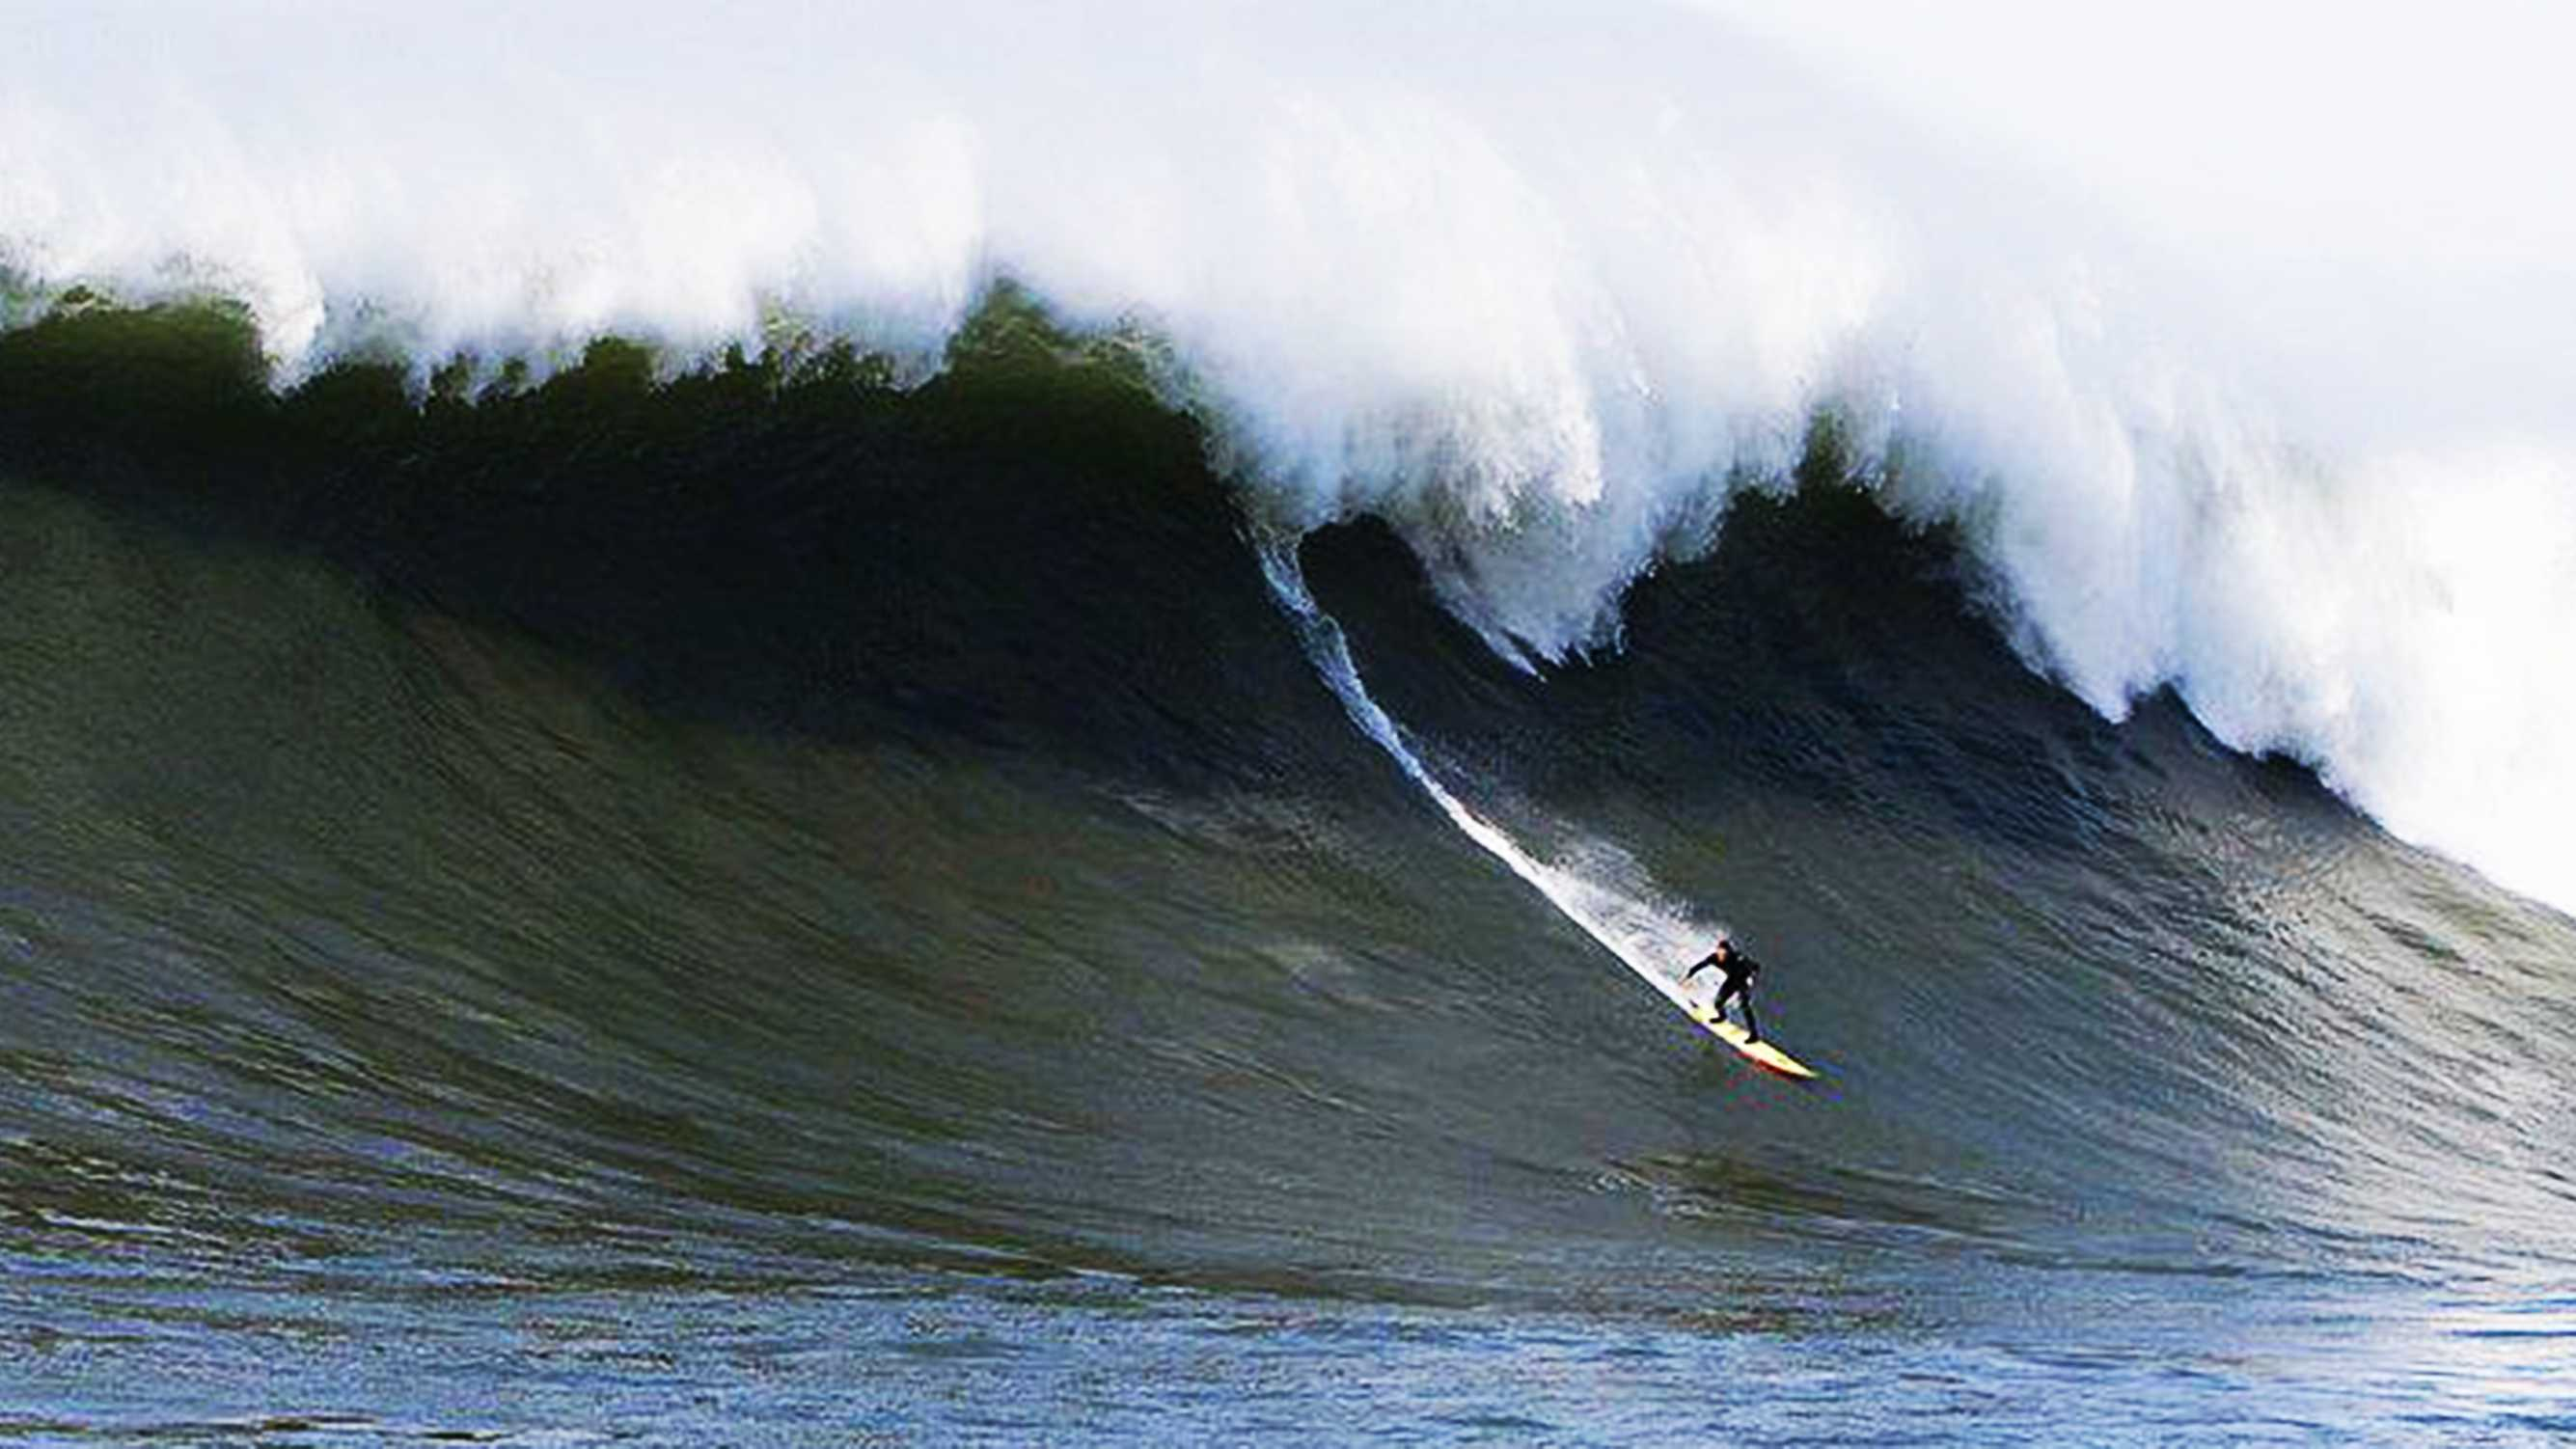 Shawn Dollar of Santa Cruz catches a 55-foot wave at Mavericks.